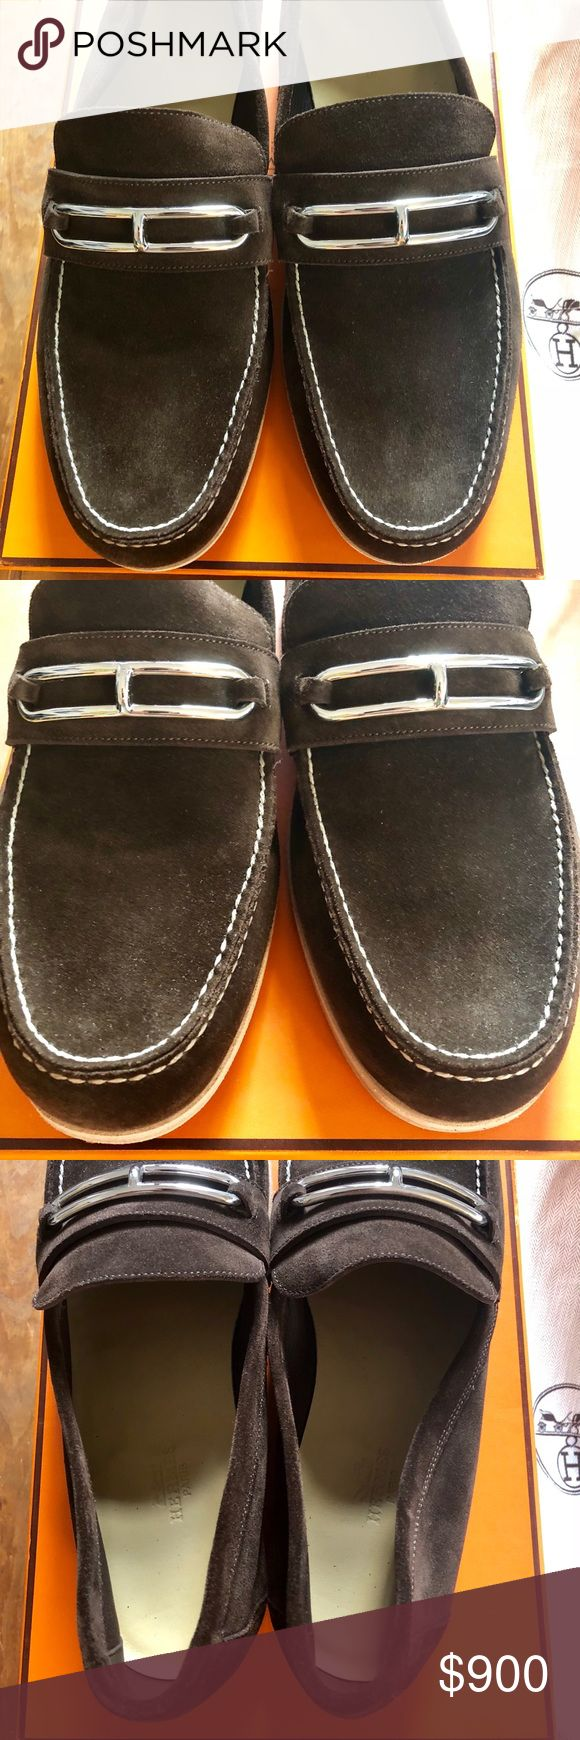 Hermès of Paris - NWT Mens Brown Loafer sz EU 43.5 Hermès of Paris - Dark brown loafer / slip on dress shoe. Suede exterior, Hermès silver buckle over the top. EU 43.5, US 10 / 9.5.  This pair is brand new with tags, has not been worn, and will include the cloth sleeves and original Hermès box. Hermes Shoes Loafers & Slip-Ons